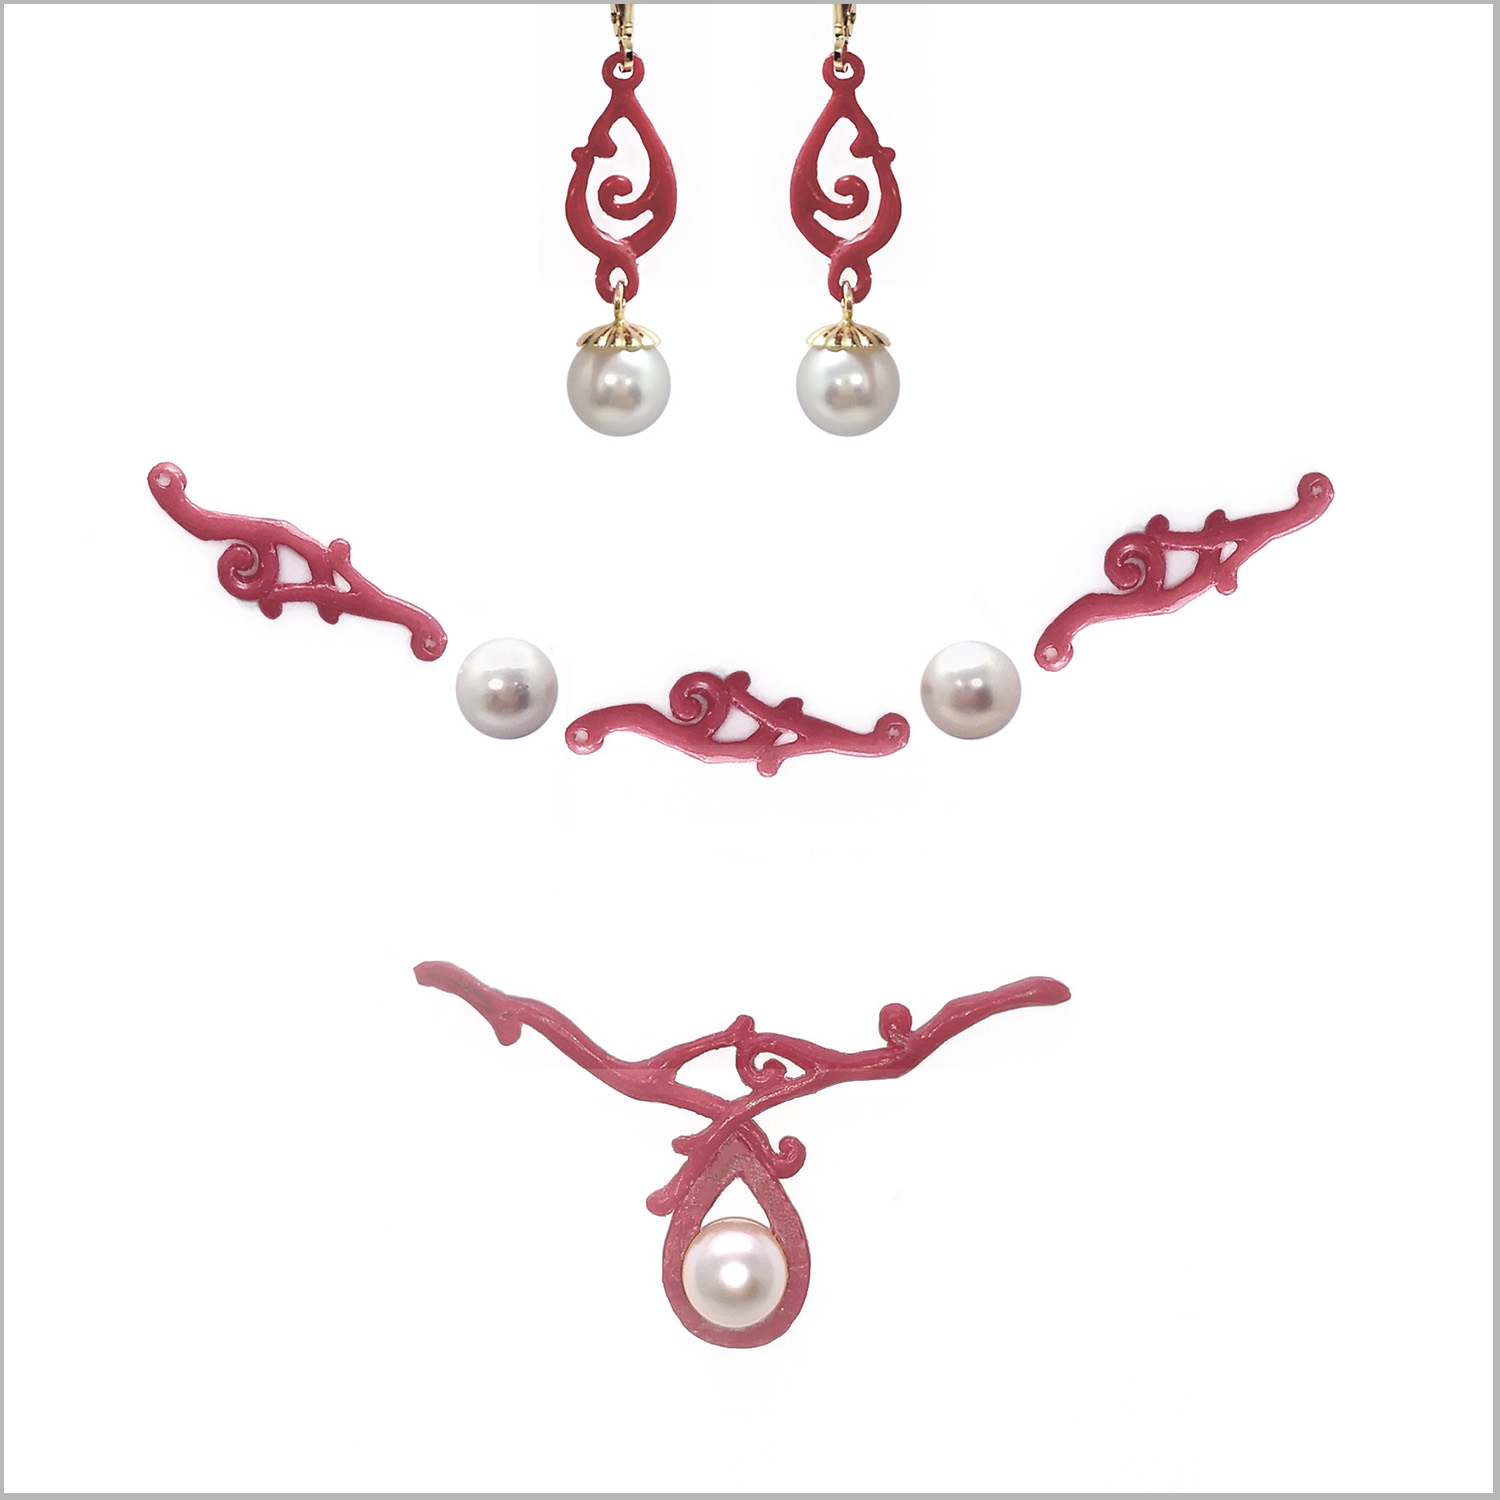 Hand-carved wax models for lost wax casting process. Pearl and scroll branch style pieces for earrings, necklace and bracelet, commissioned ordered as a custom jewelry set for a bride to wear on her wedding day,